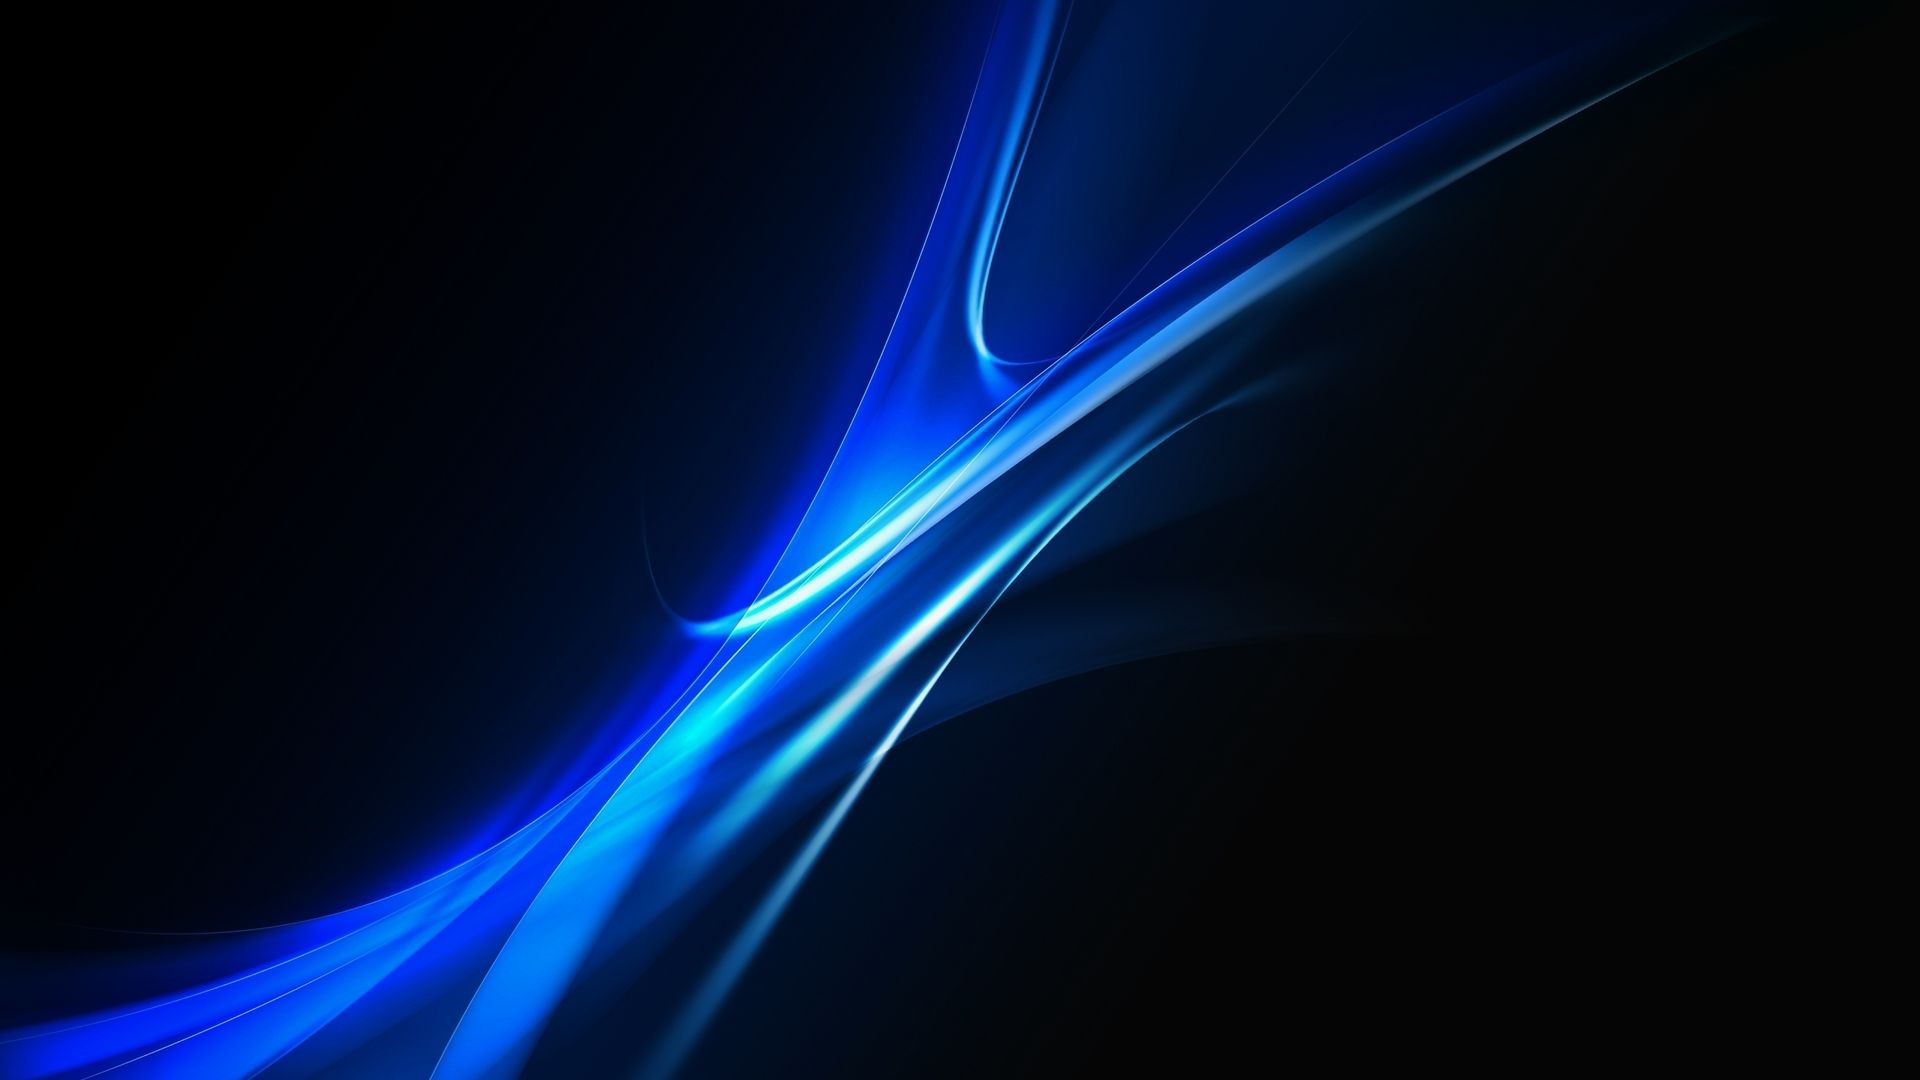 1920x1080 Blue Abstract Wallpaper